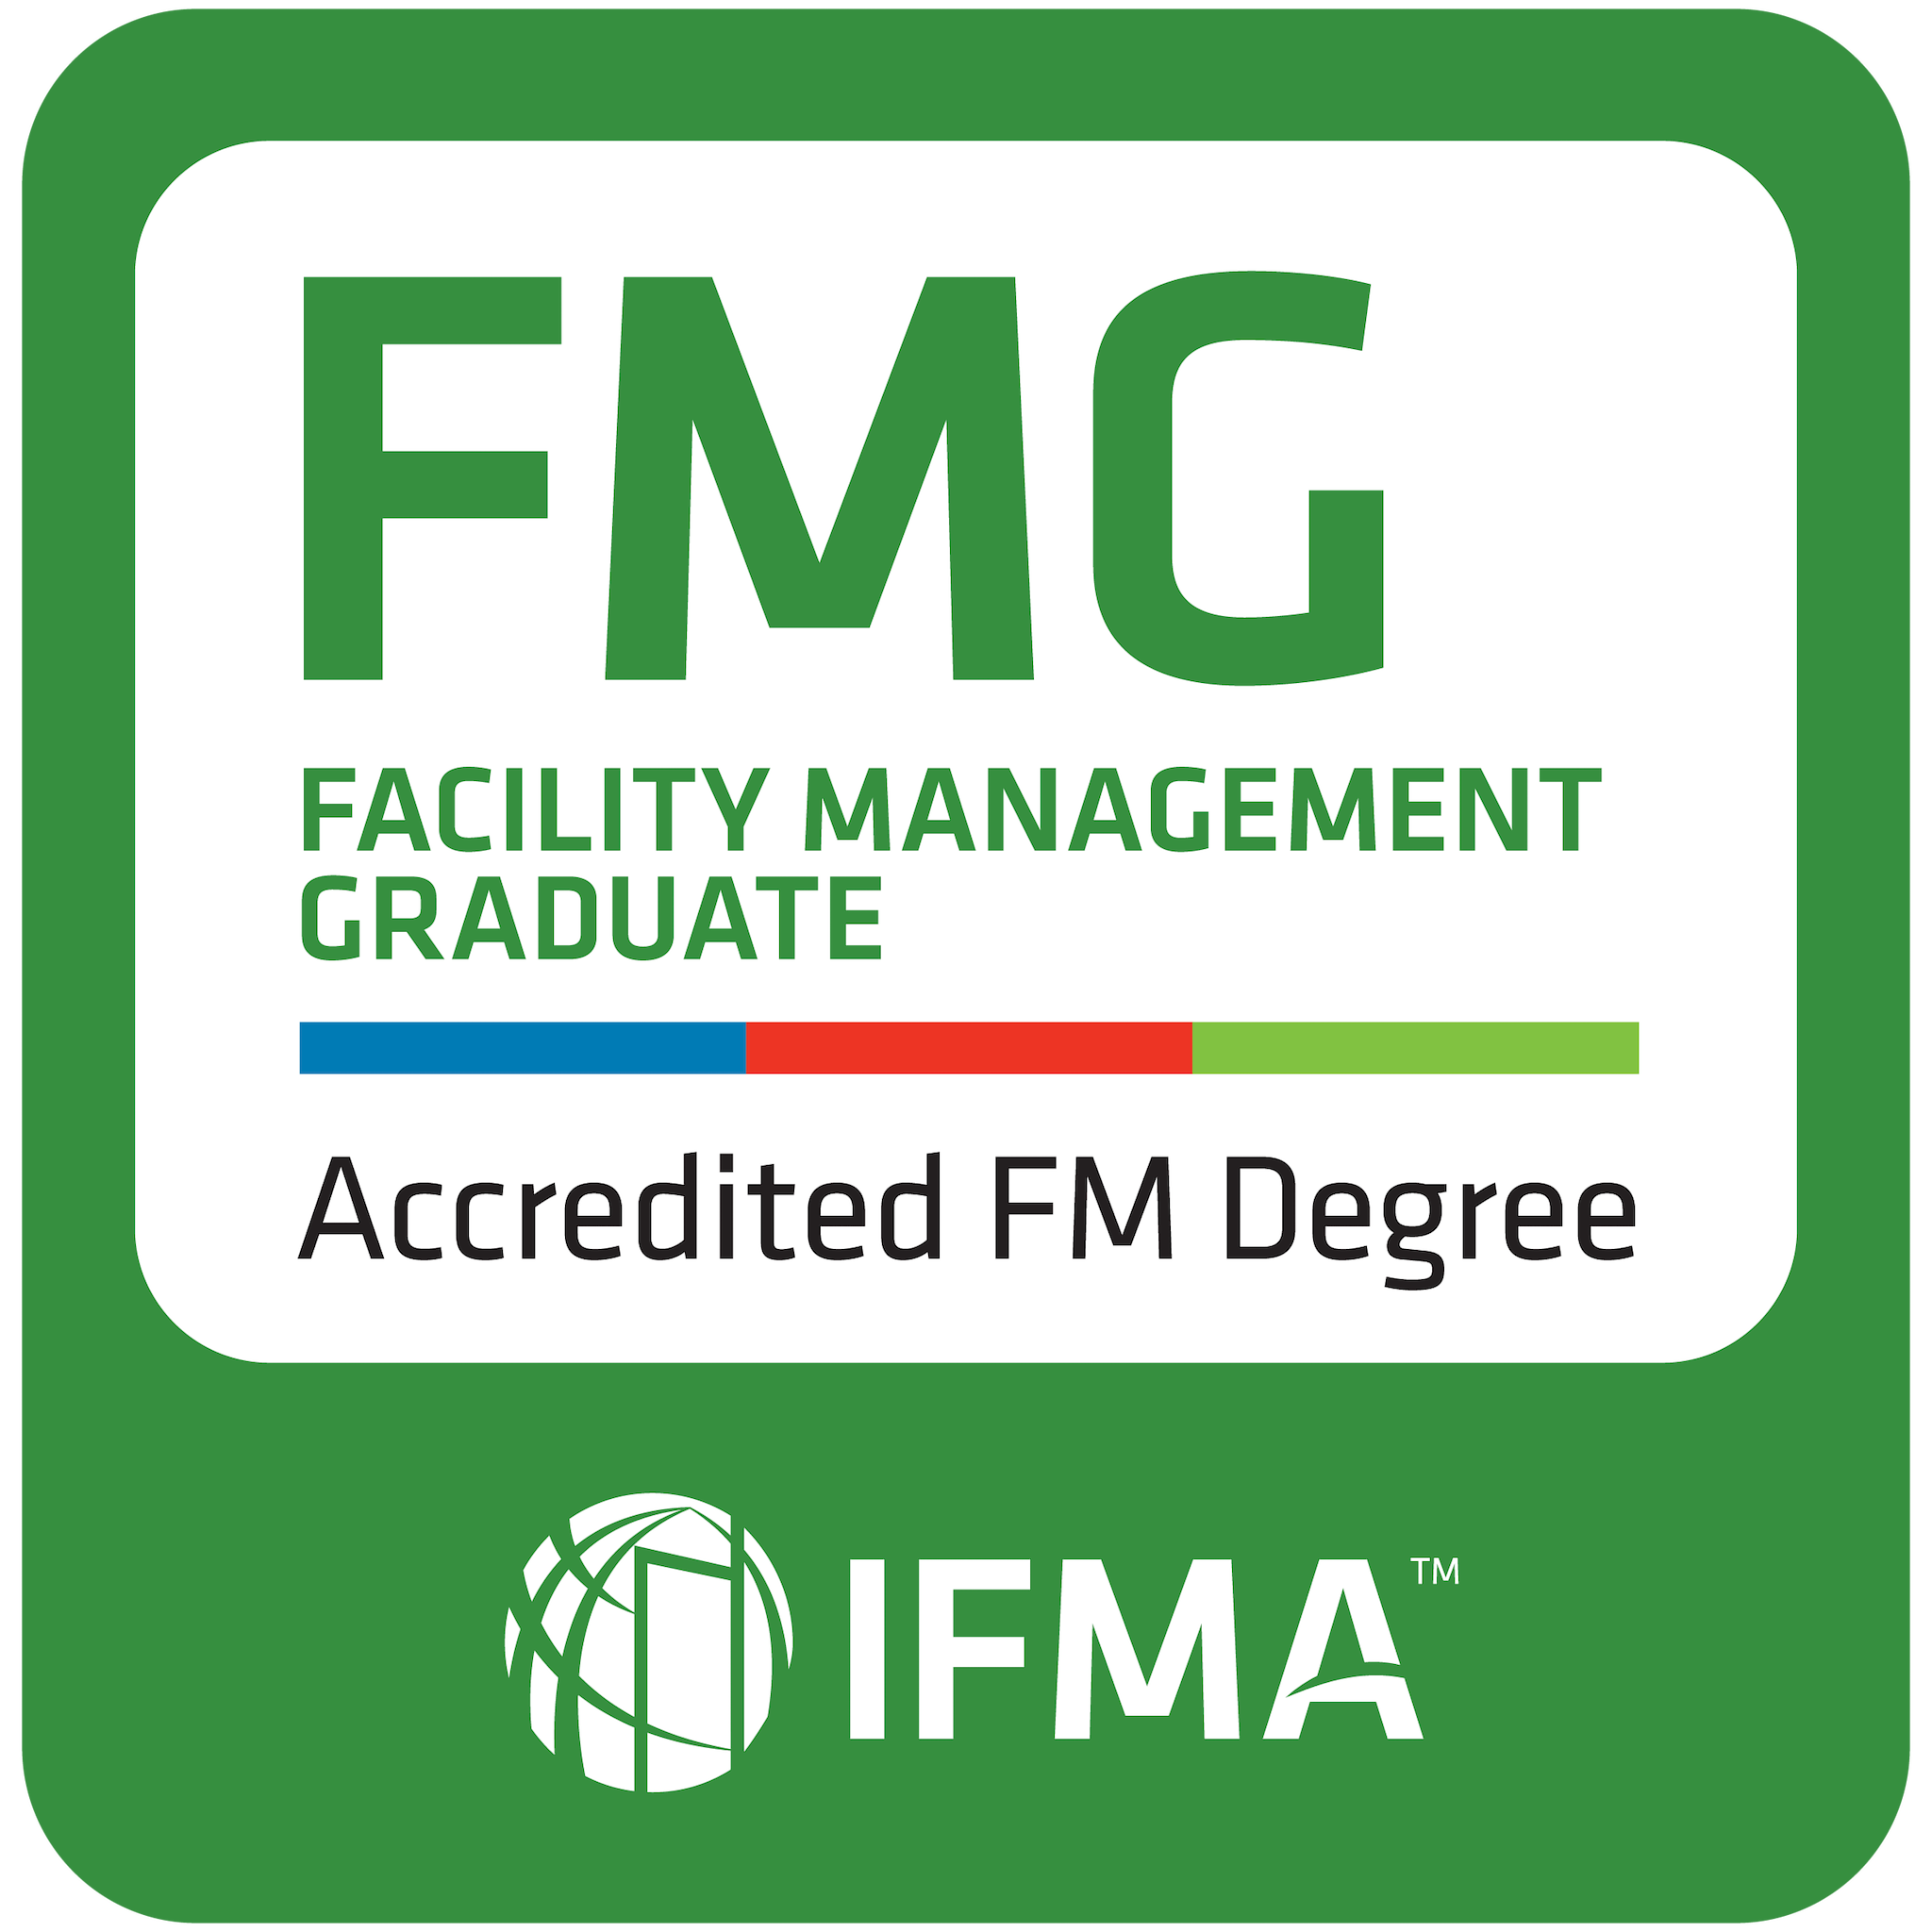 Facility Management Graduate (FMG)